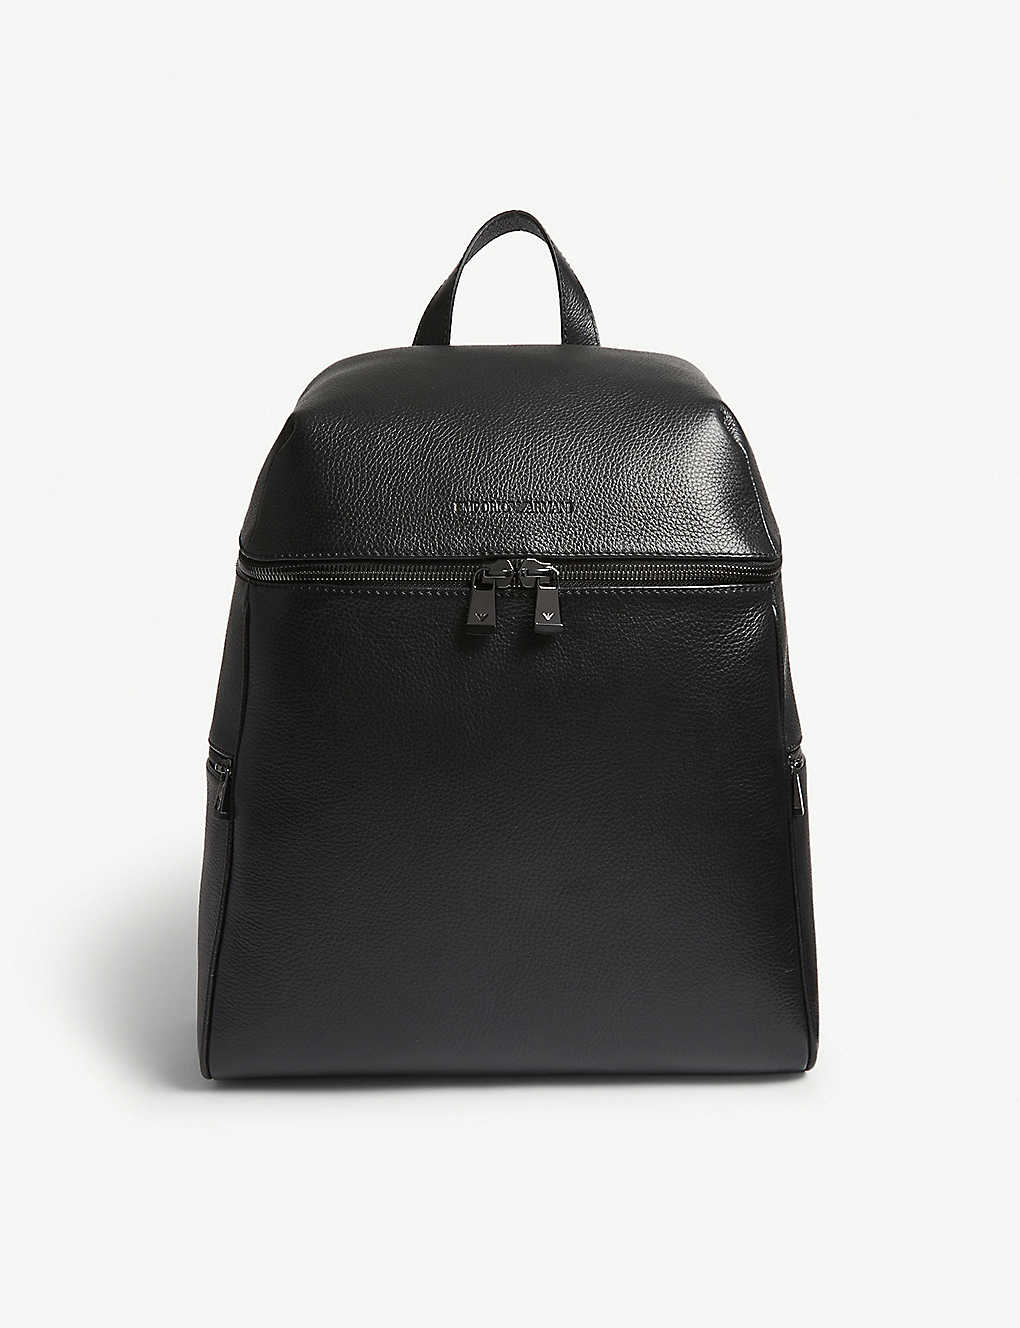 EMPORIO ARMANI - Grained leather backpack  dec35de6cc486